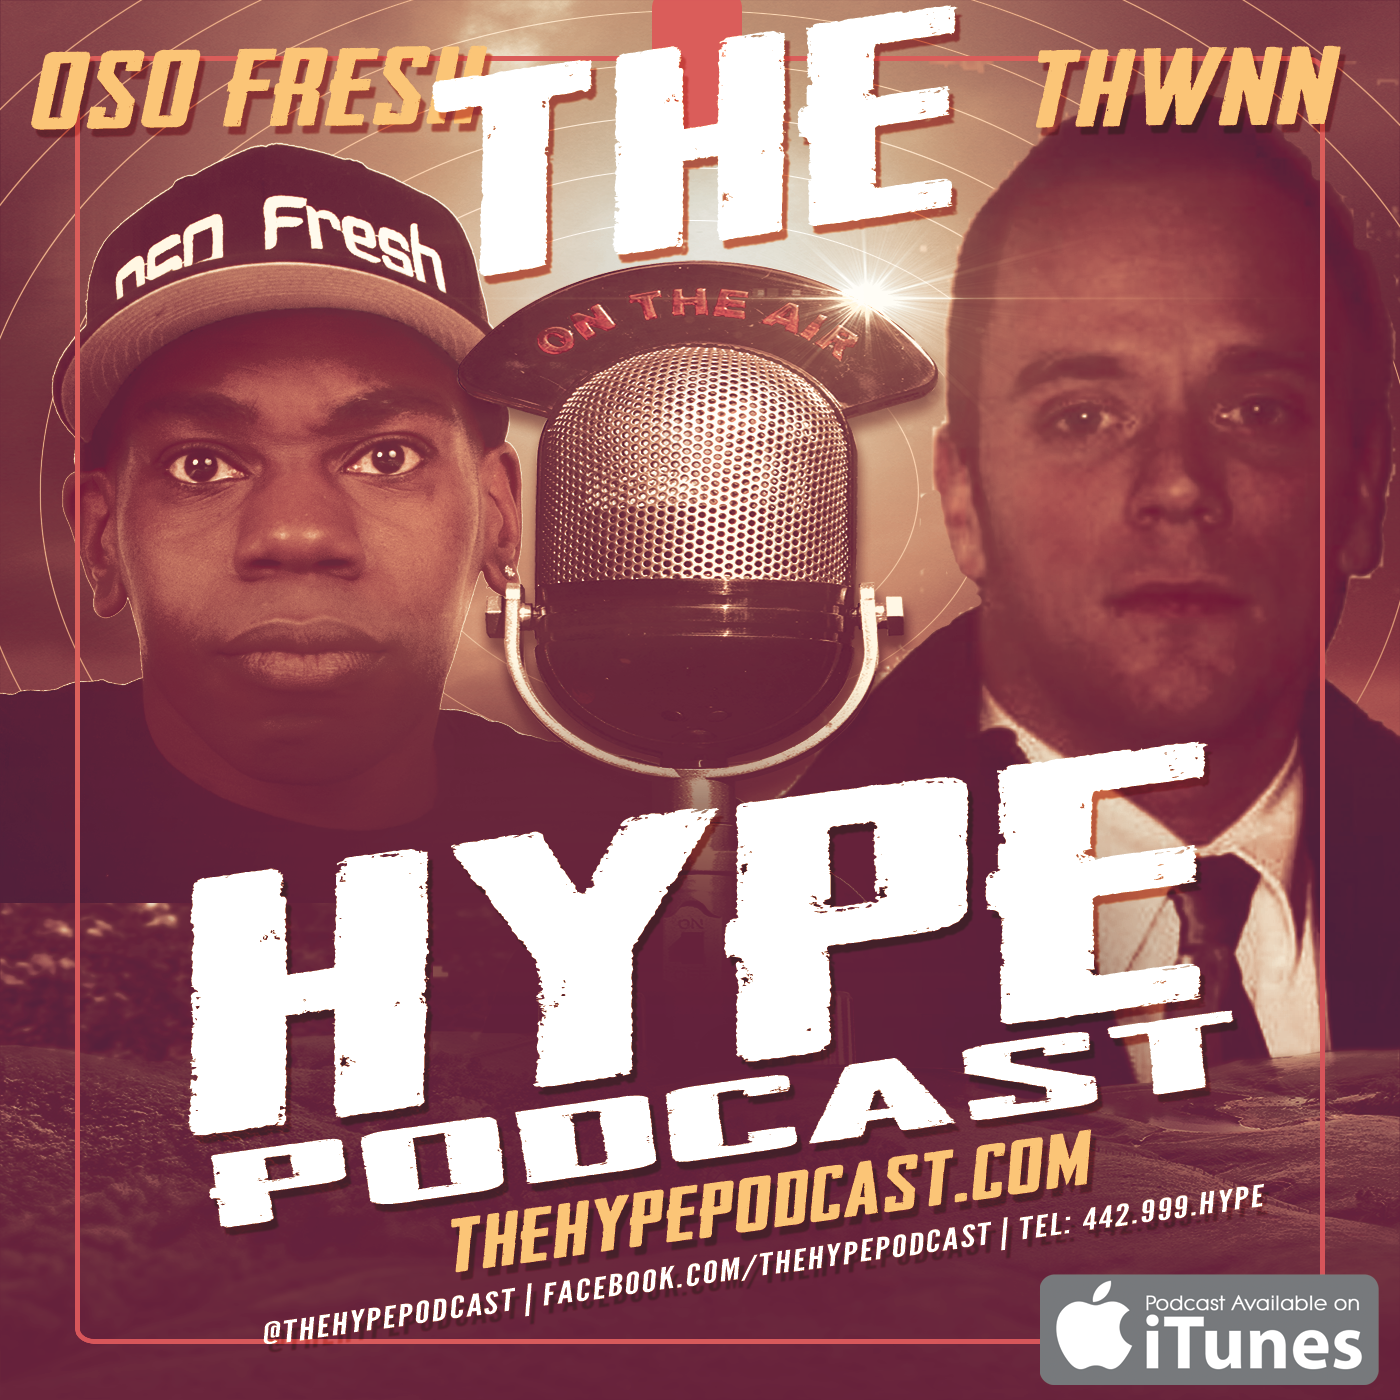 Artwork for The Hype Podcast Episode 99.4: A Ni**er under the Table